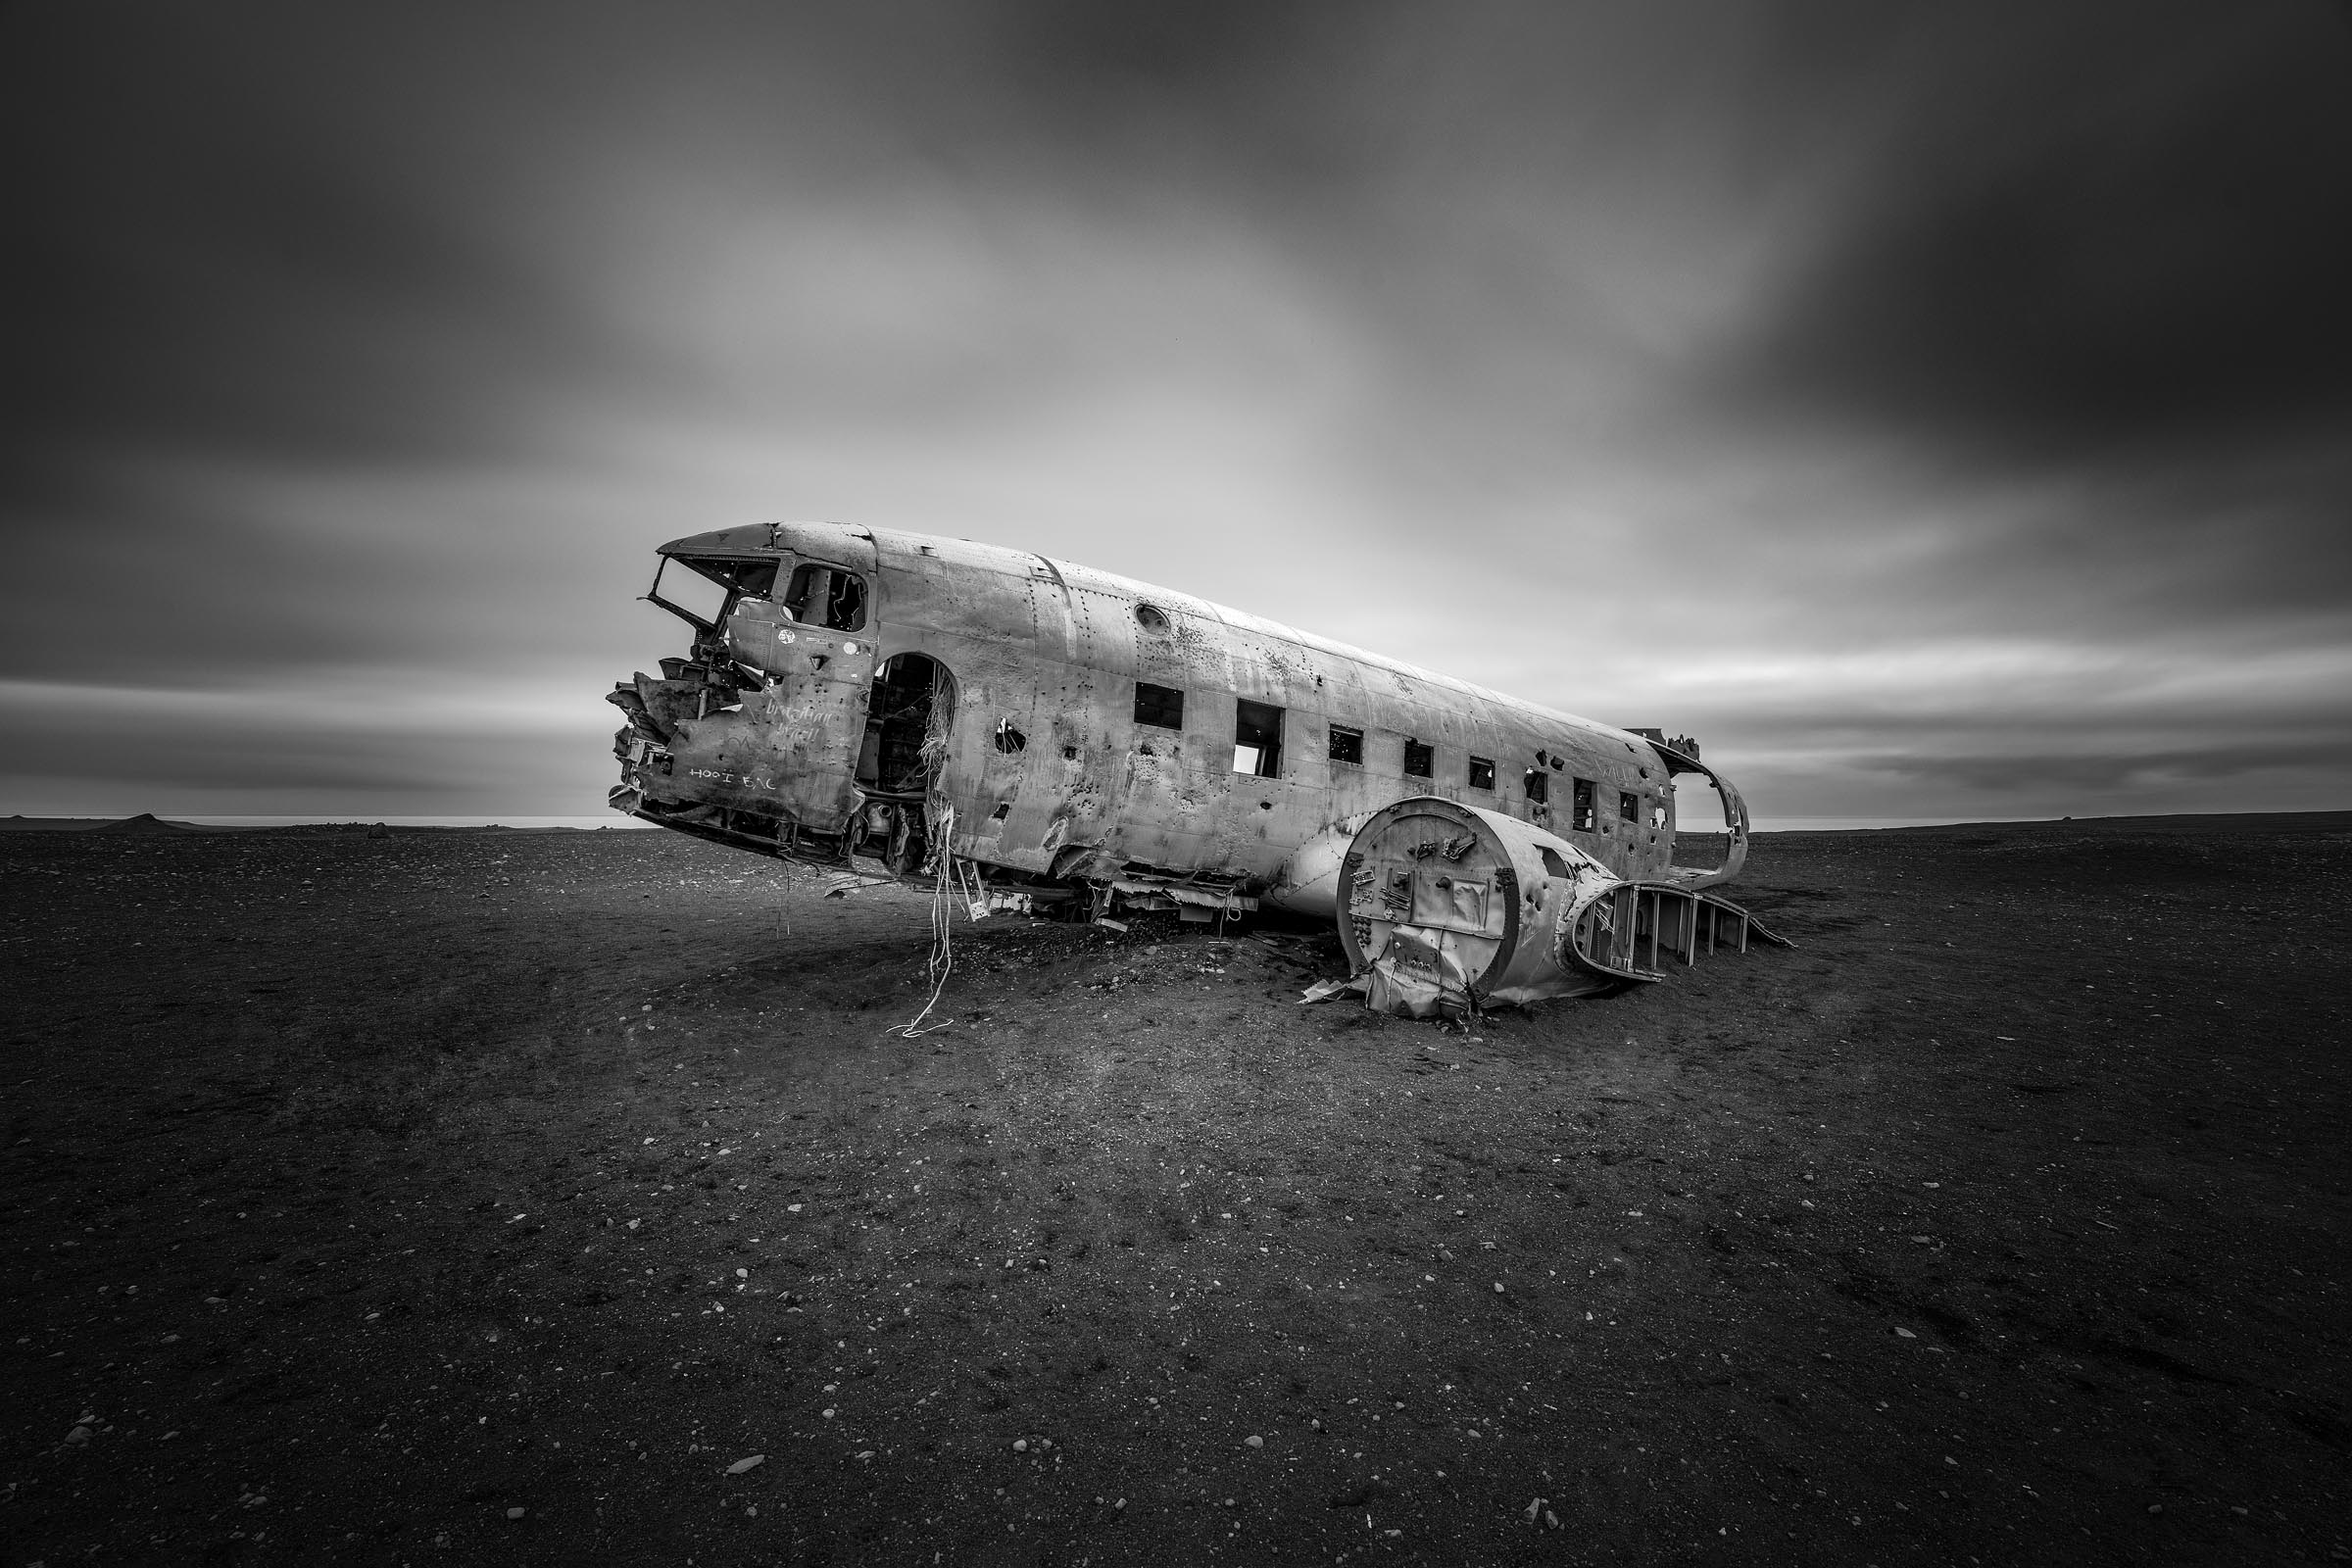 Photograph of Plane Crash in Solheimasandur Beach, Iceland by Brent Goldman Photography